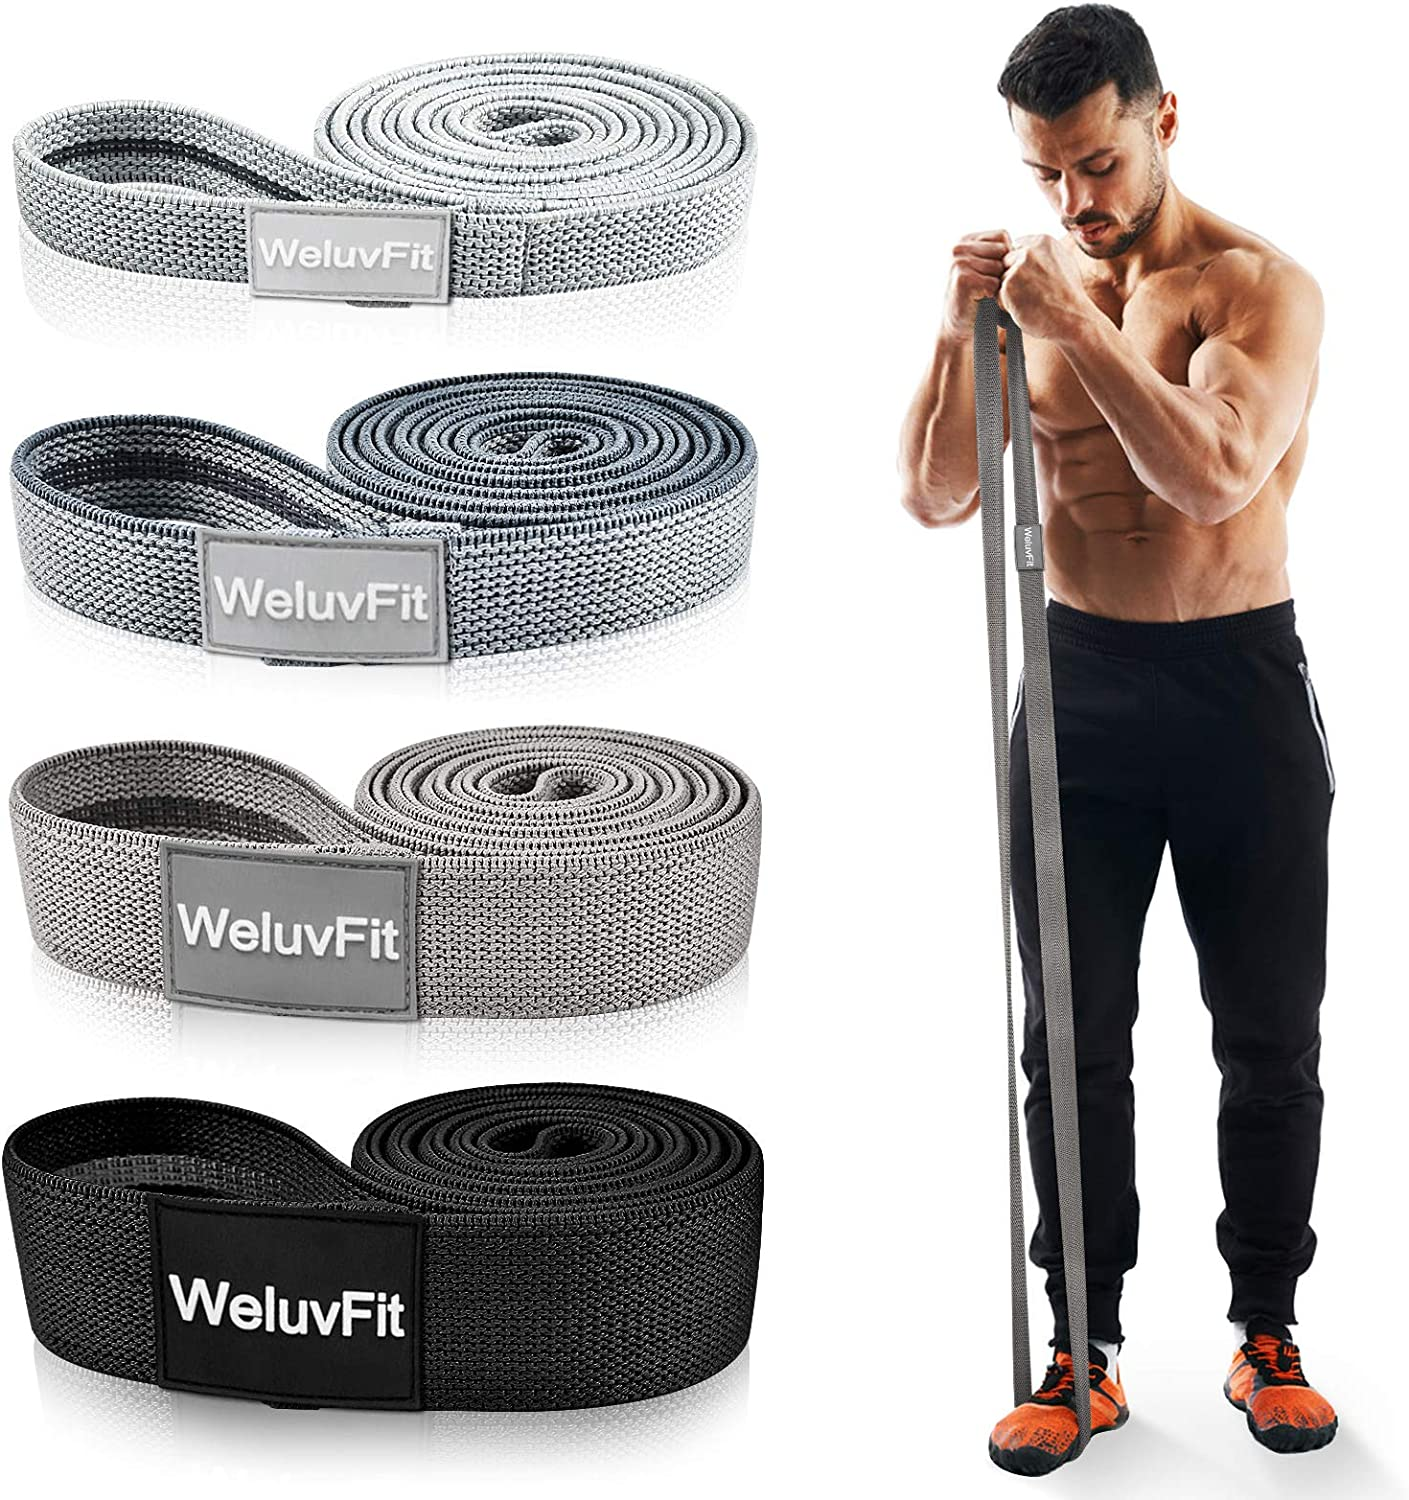 Inexpensive Long Resistance Bands Japan Maker New WeluvFit Workout Wom for